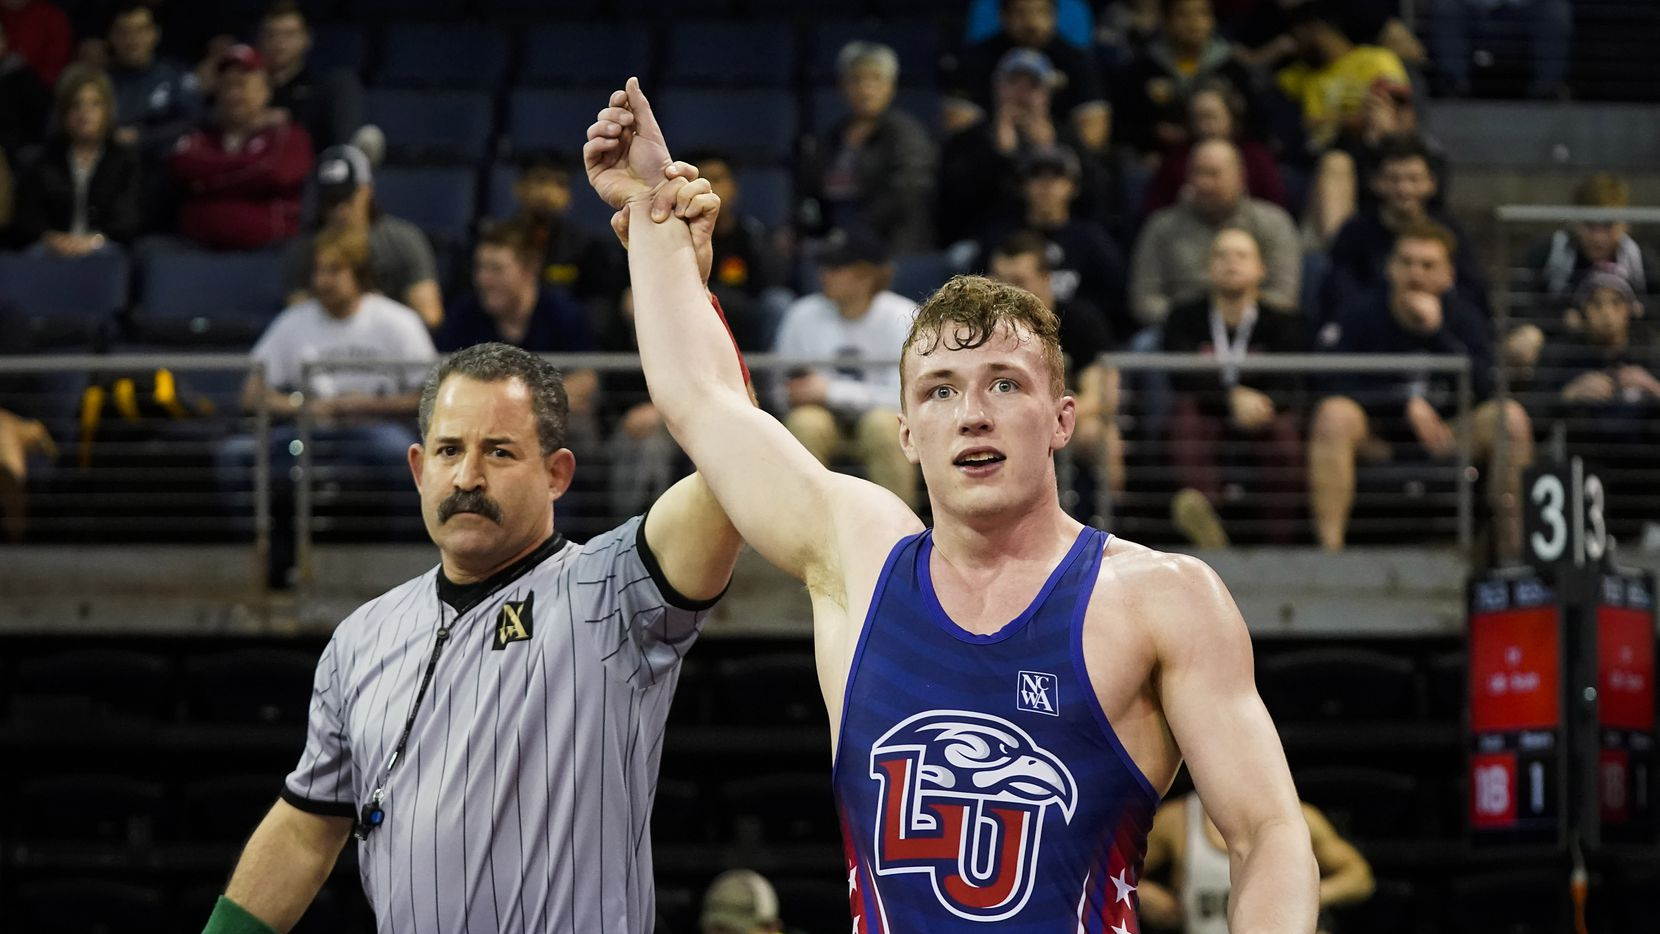 Joe Scott of Liberty University is acknowledges as the winner. The referee, against the tournament's protocol amid coronavirus concerns, elevated Scott's arms after the win during the NCWA national championships at the Allen Events Center on Friday, March 13, 2020, in Allen, Texas.